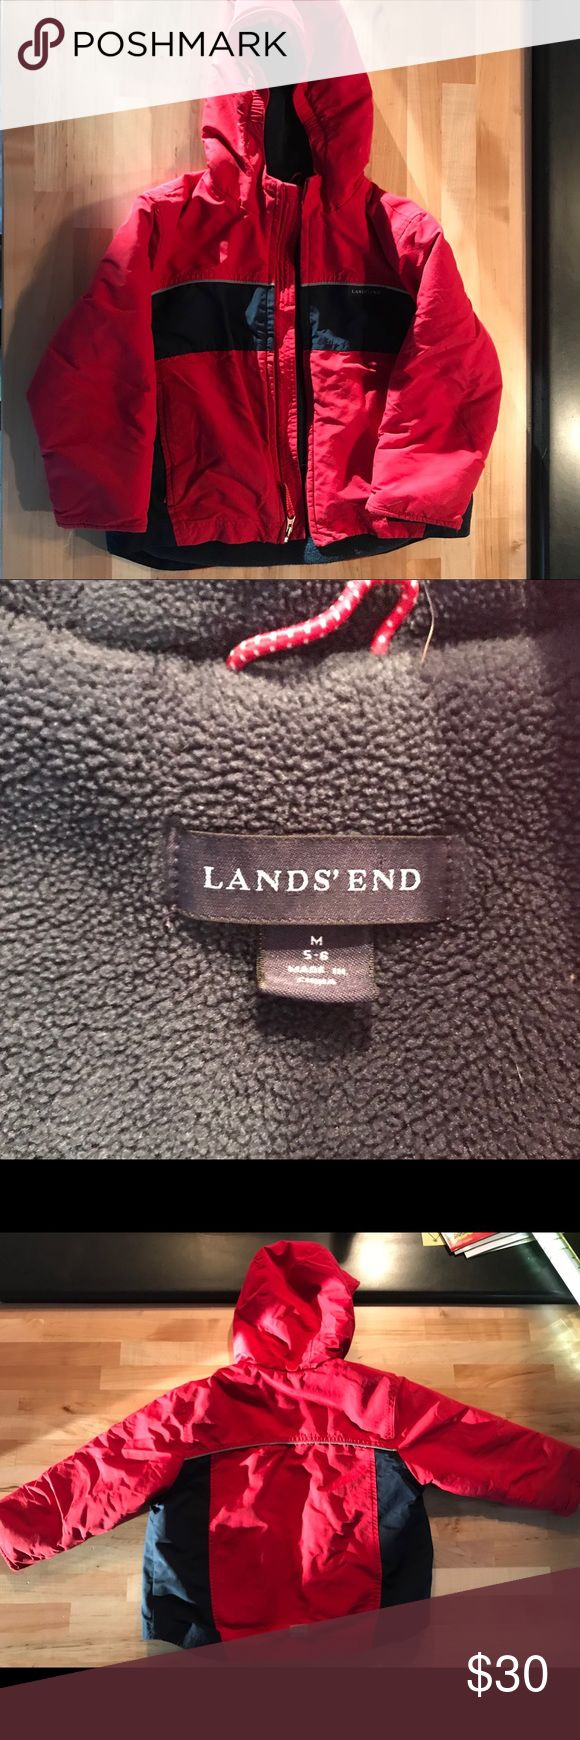 Boys winter coat Lands End boys winter coat in good condition. Lands' End Jackets & Coats Puffers